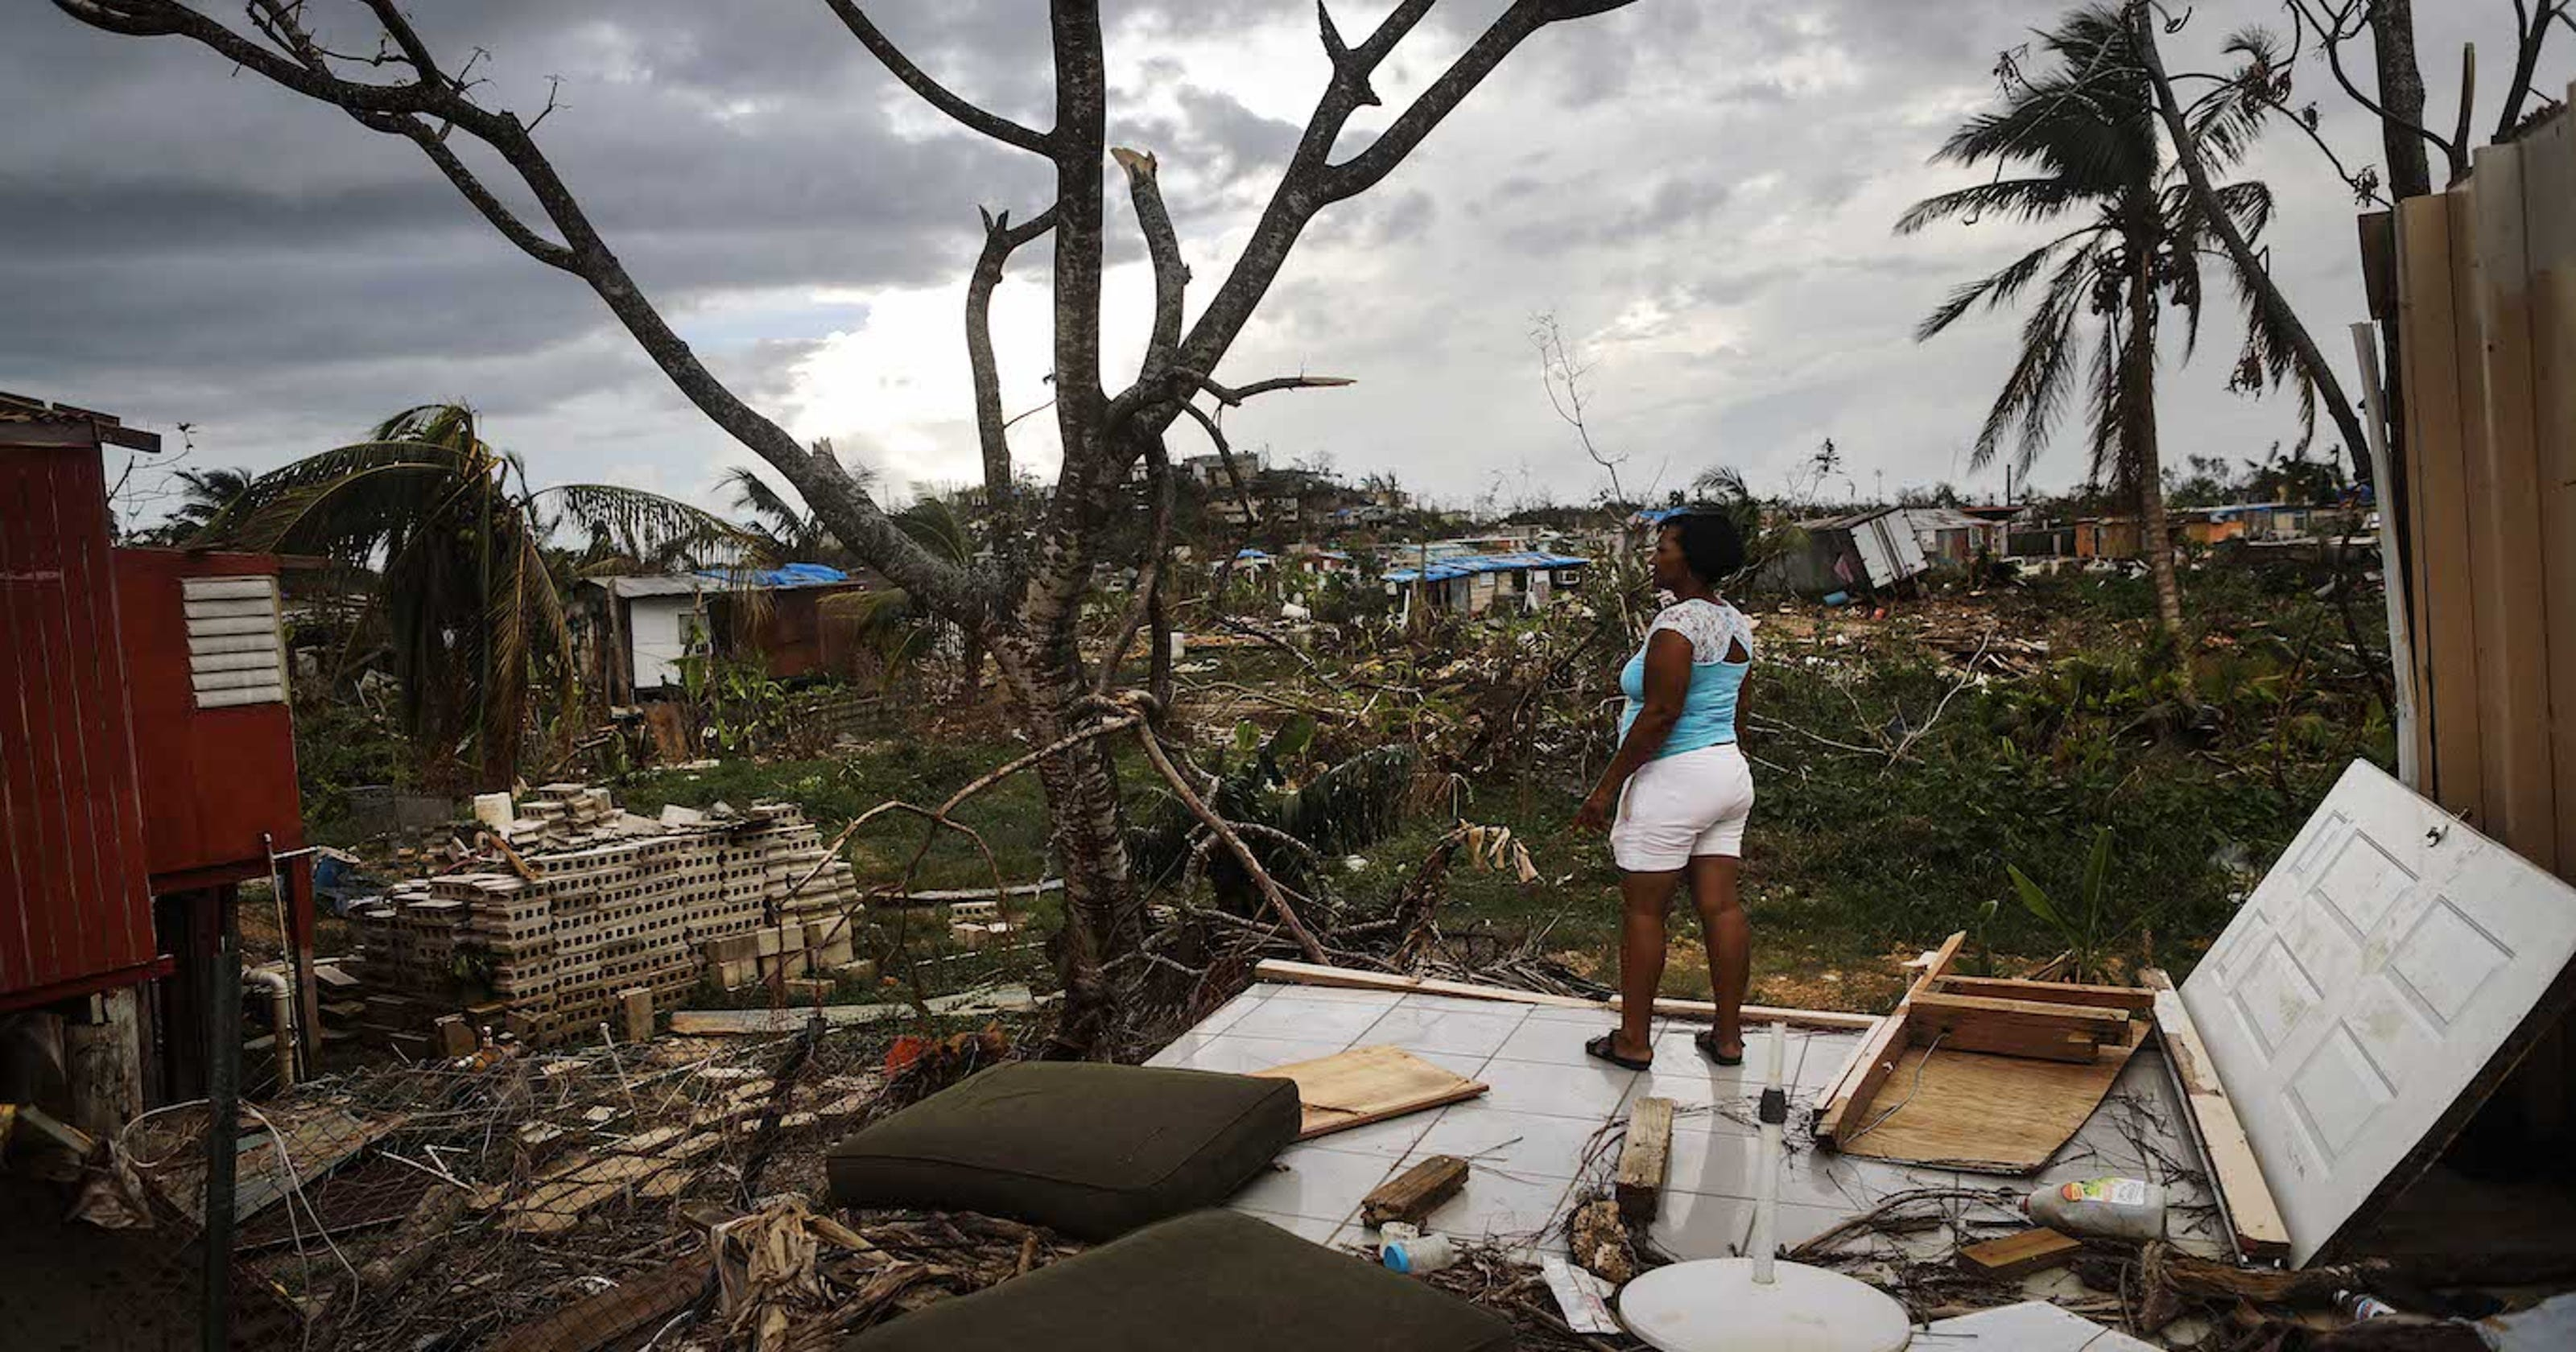 Puerto Rico hurricane recovery at a trickle as new crises emerge – and Trump fumes